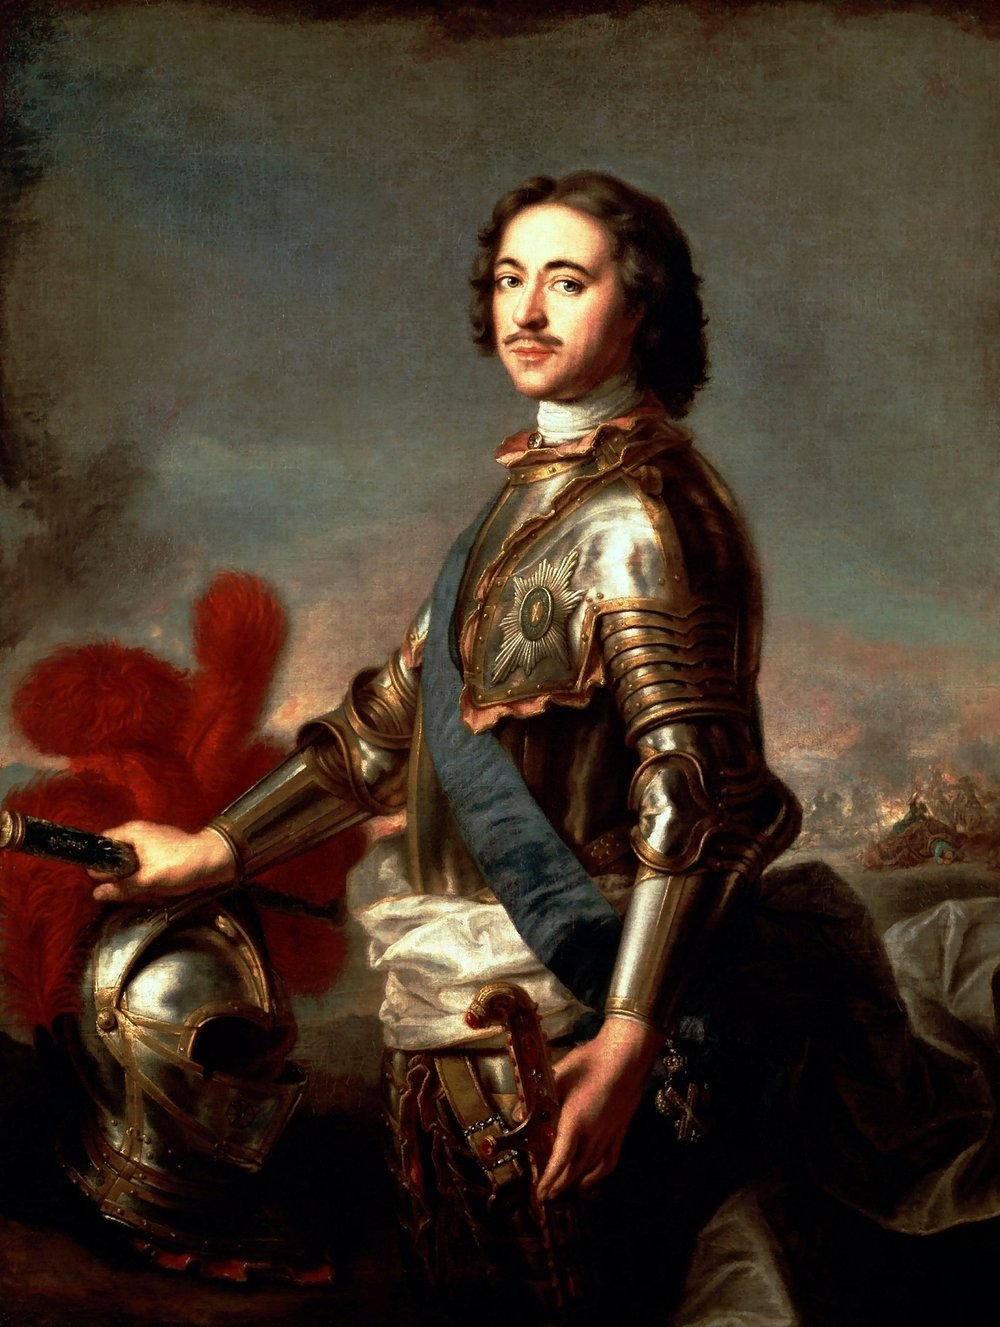 J.-M. Nattier, Portrait of Peter the Great, 1717